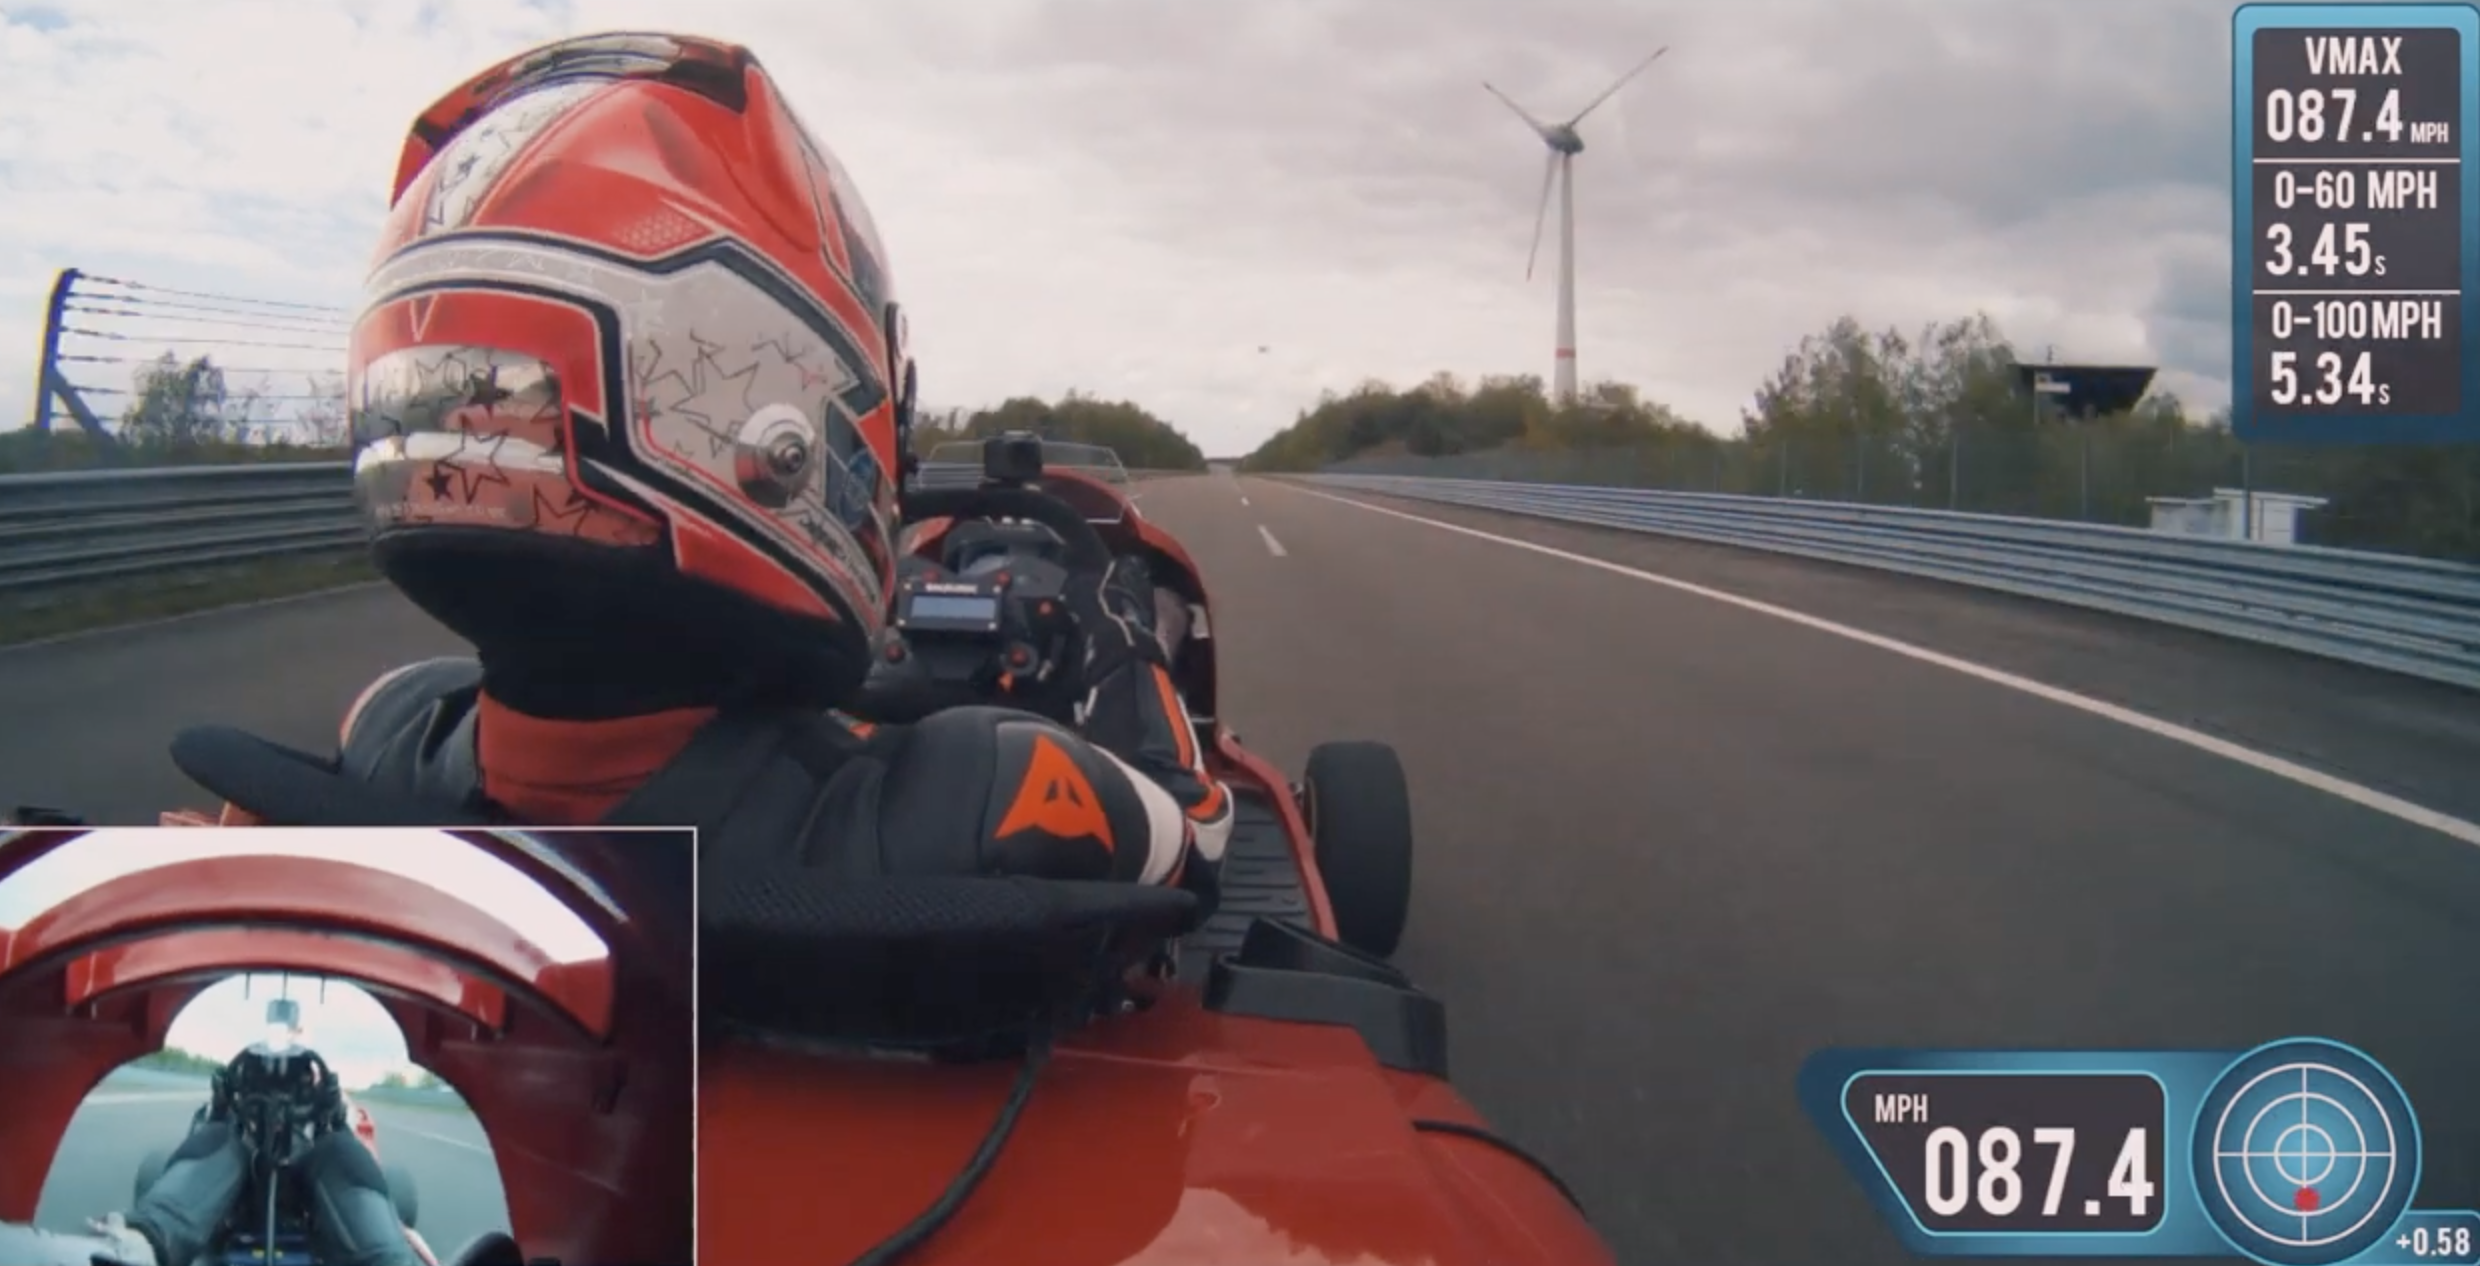 Honda Mean Mower V2 sets Guinness record for 0-100 miles per hour